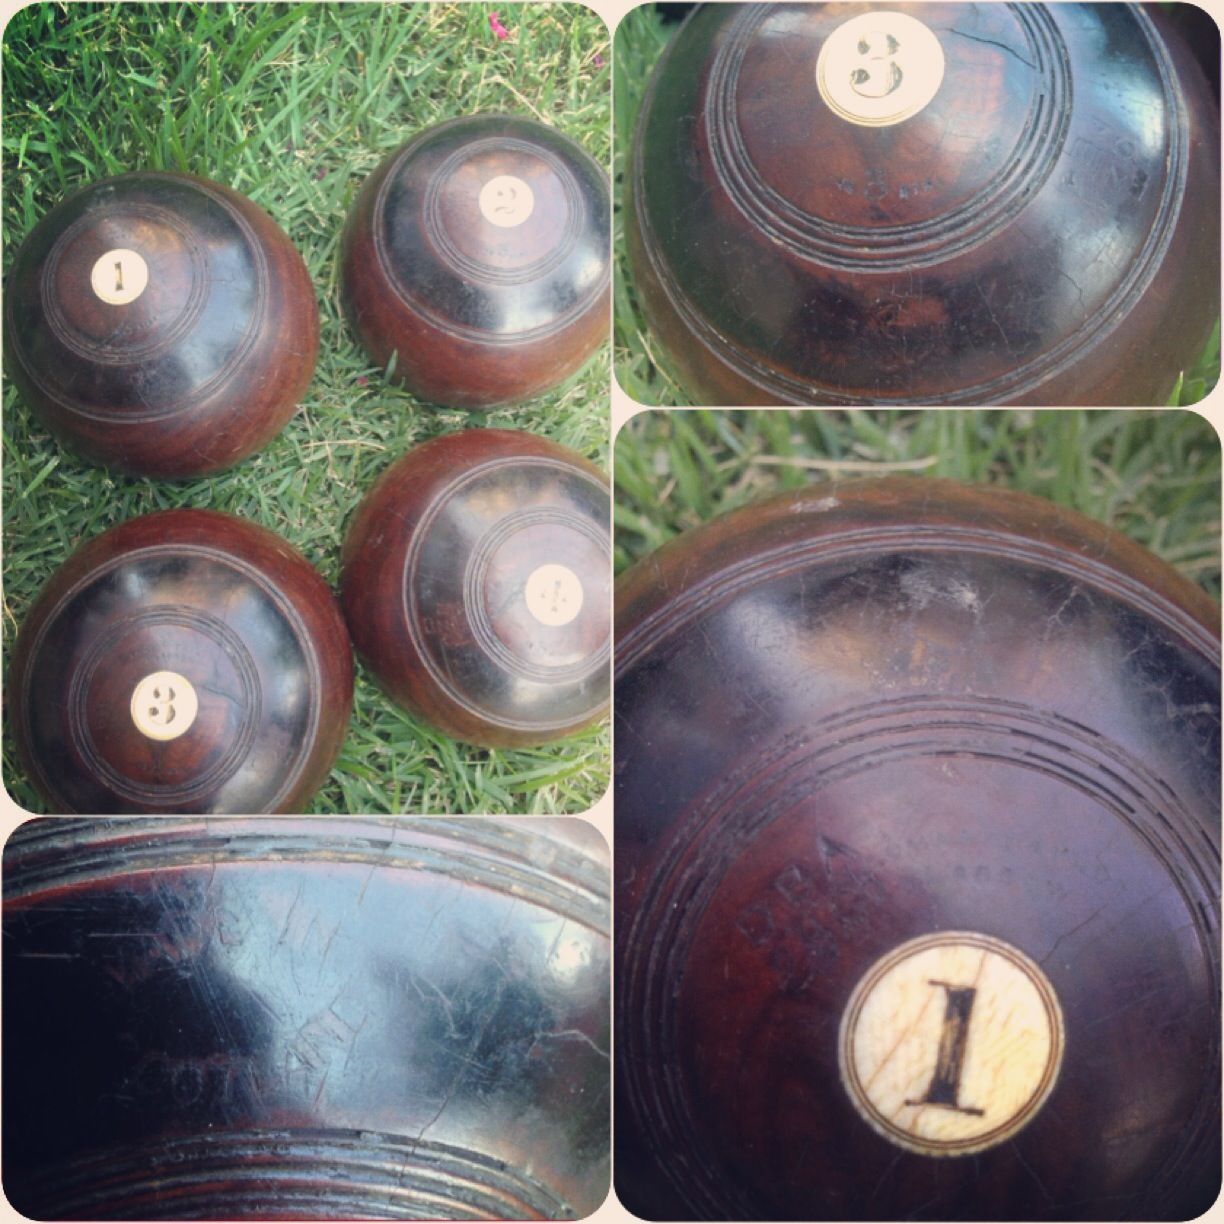 Antique lawn bowling set from scottish maker thomas taylor glasgow antique lawn bowling set from scottish maker thomas taylor glasgow geenschuldenfo Choice Image